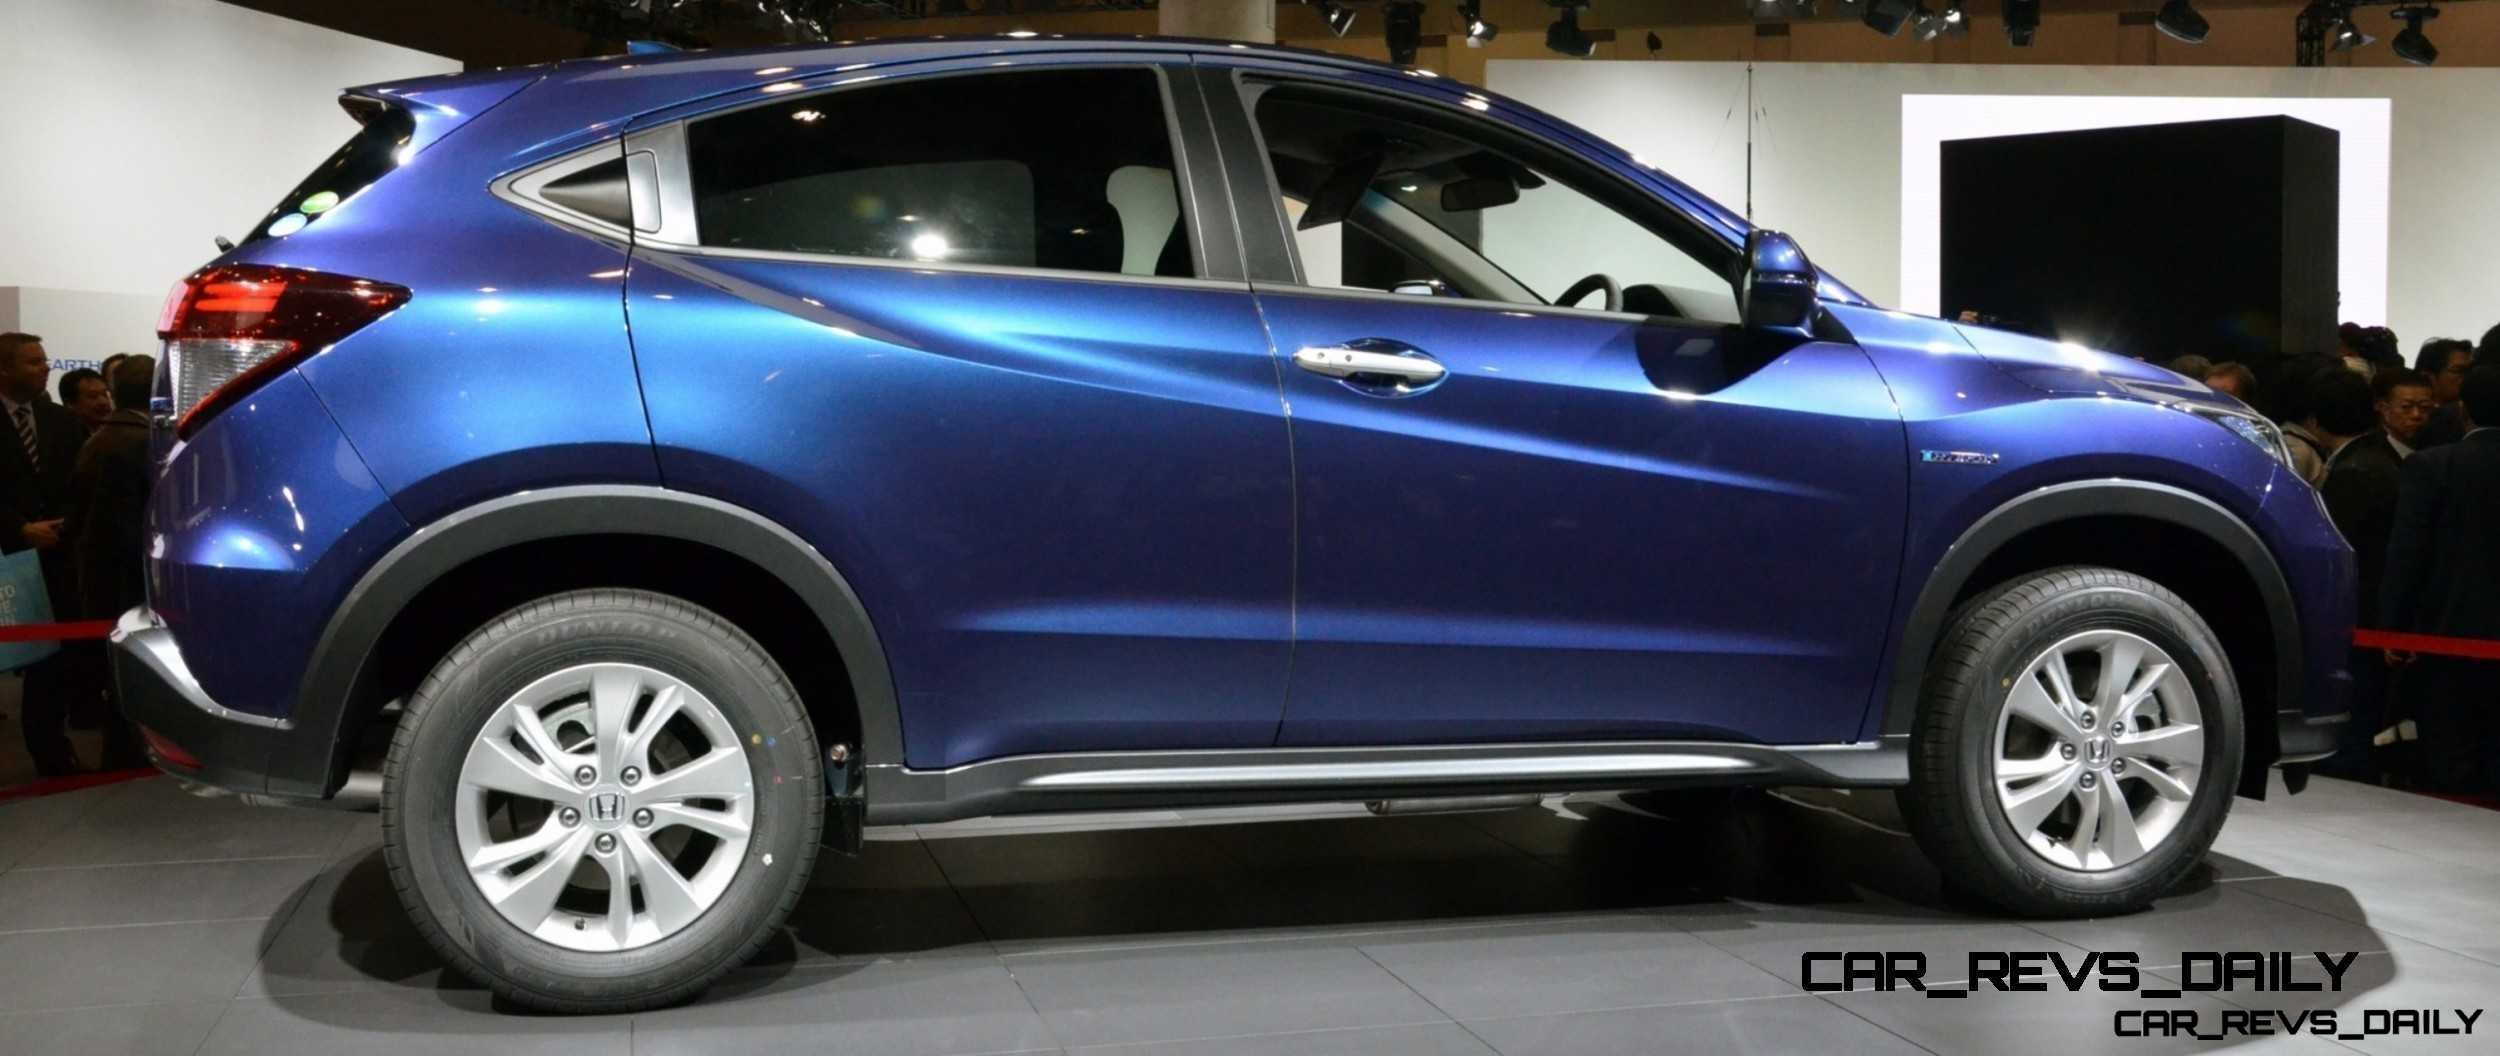 Cool! 2015 Honda Vezel Hybrid Previews Spring 2014 Civic CUV32